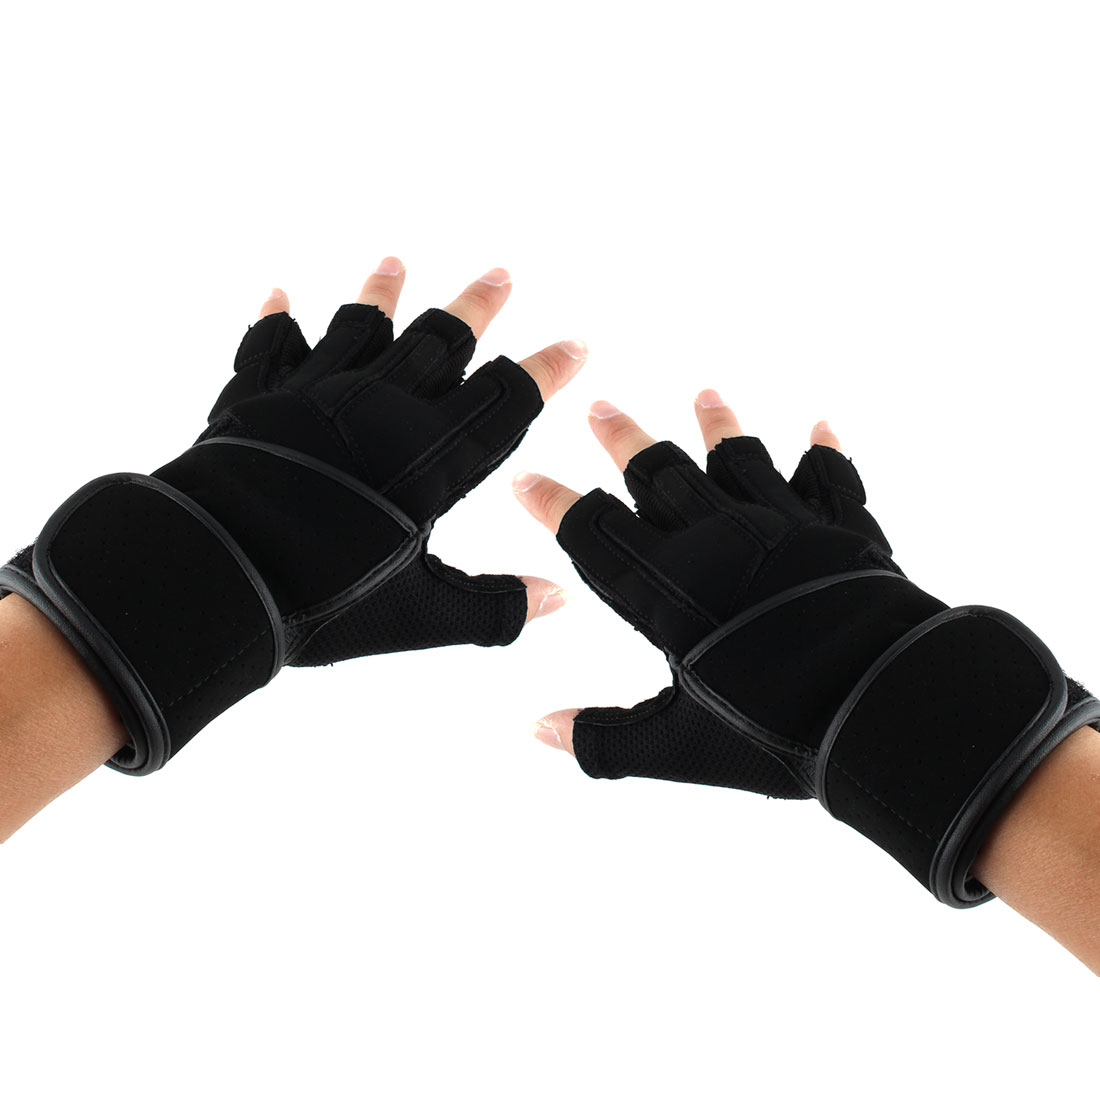 BOODUN Authorized Men PU Leather Adjustable Sports Training Workout Half Finger Fitness Gloves Black S Pair